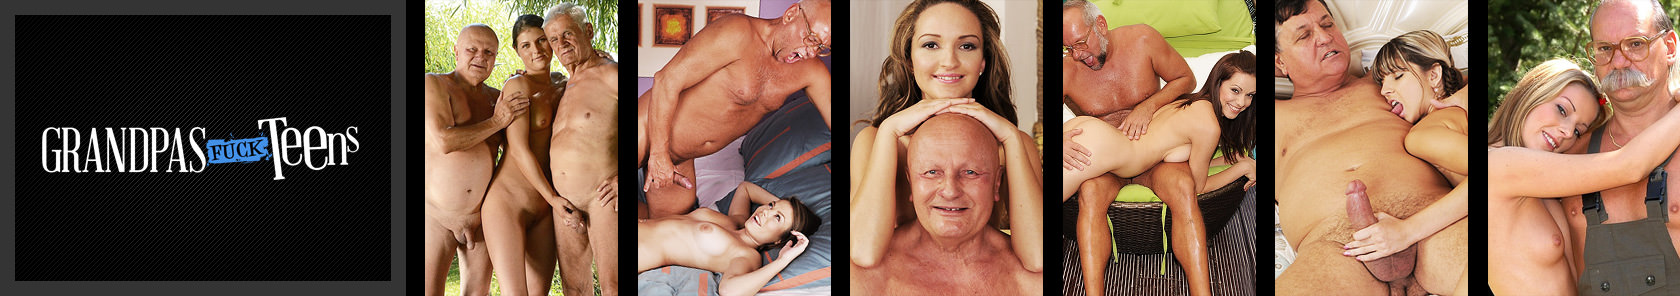 Grandpas fuck Teens on 21 Sextreme Network